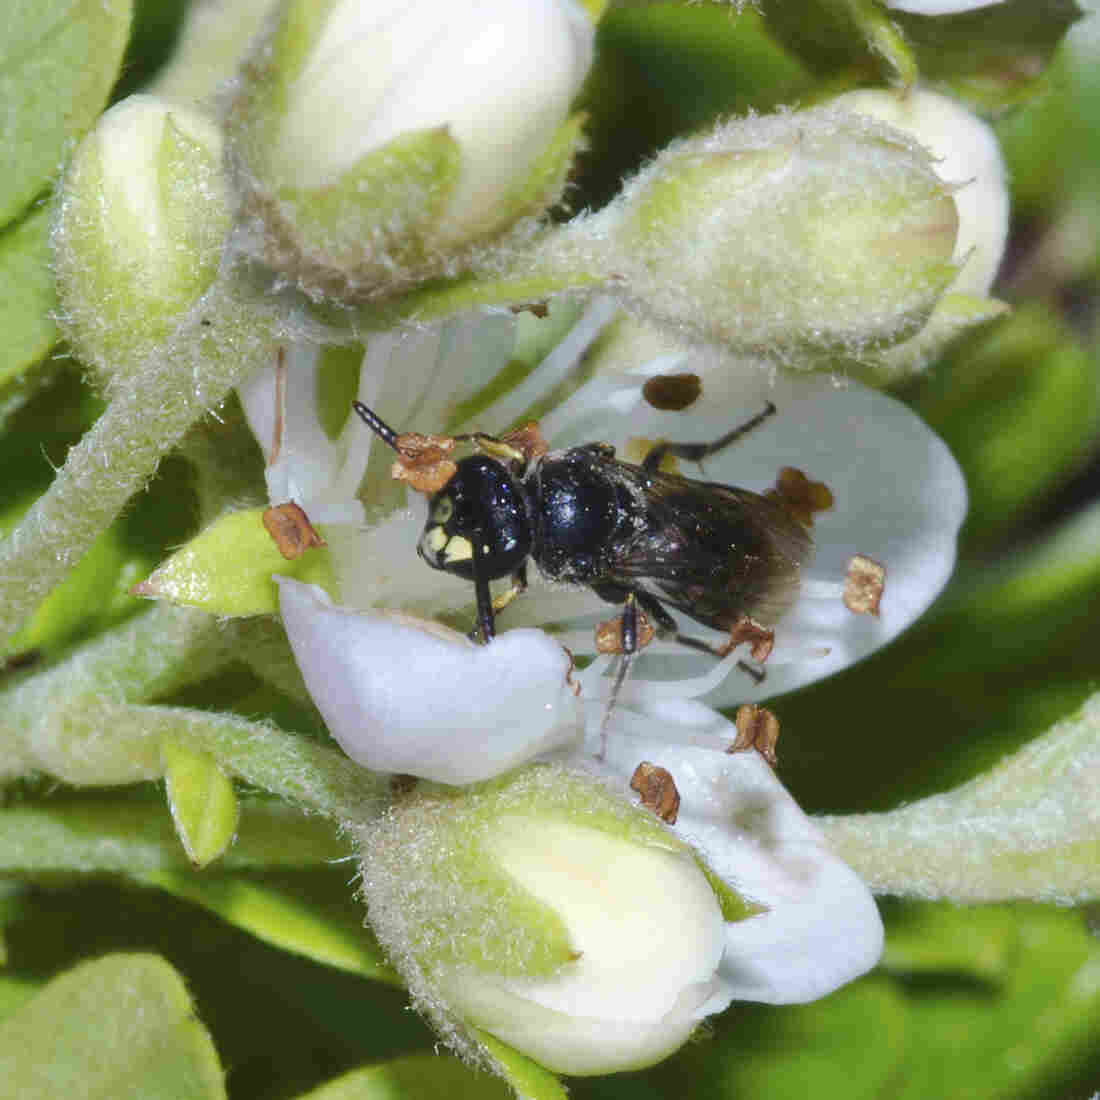 Bees Added To U.S. Endangered Species List For 1st Time